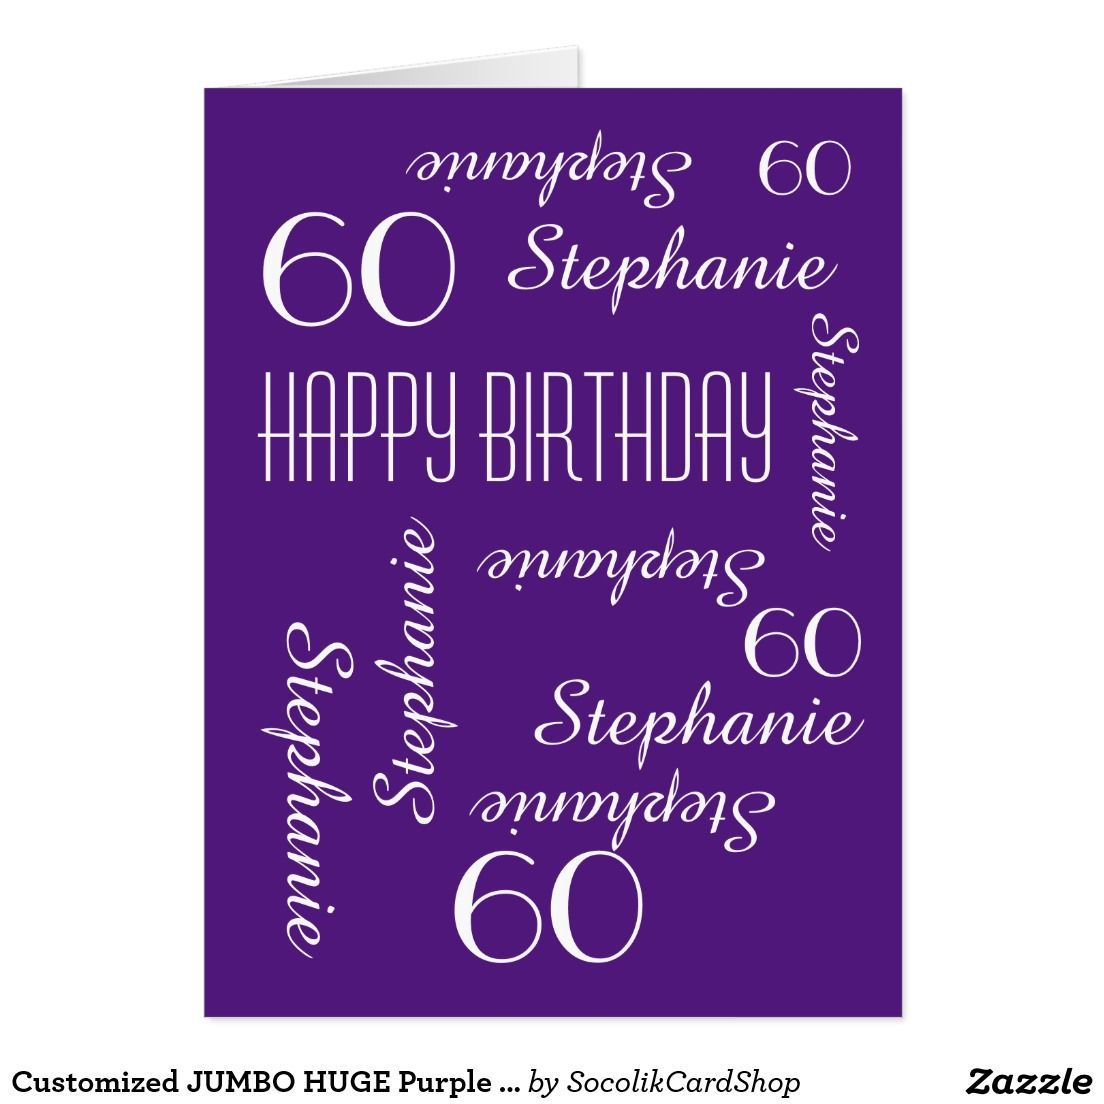 Customized Jumbo Huge Purple Birthday Card Any Age What A